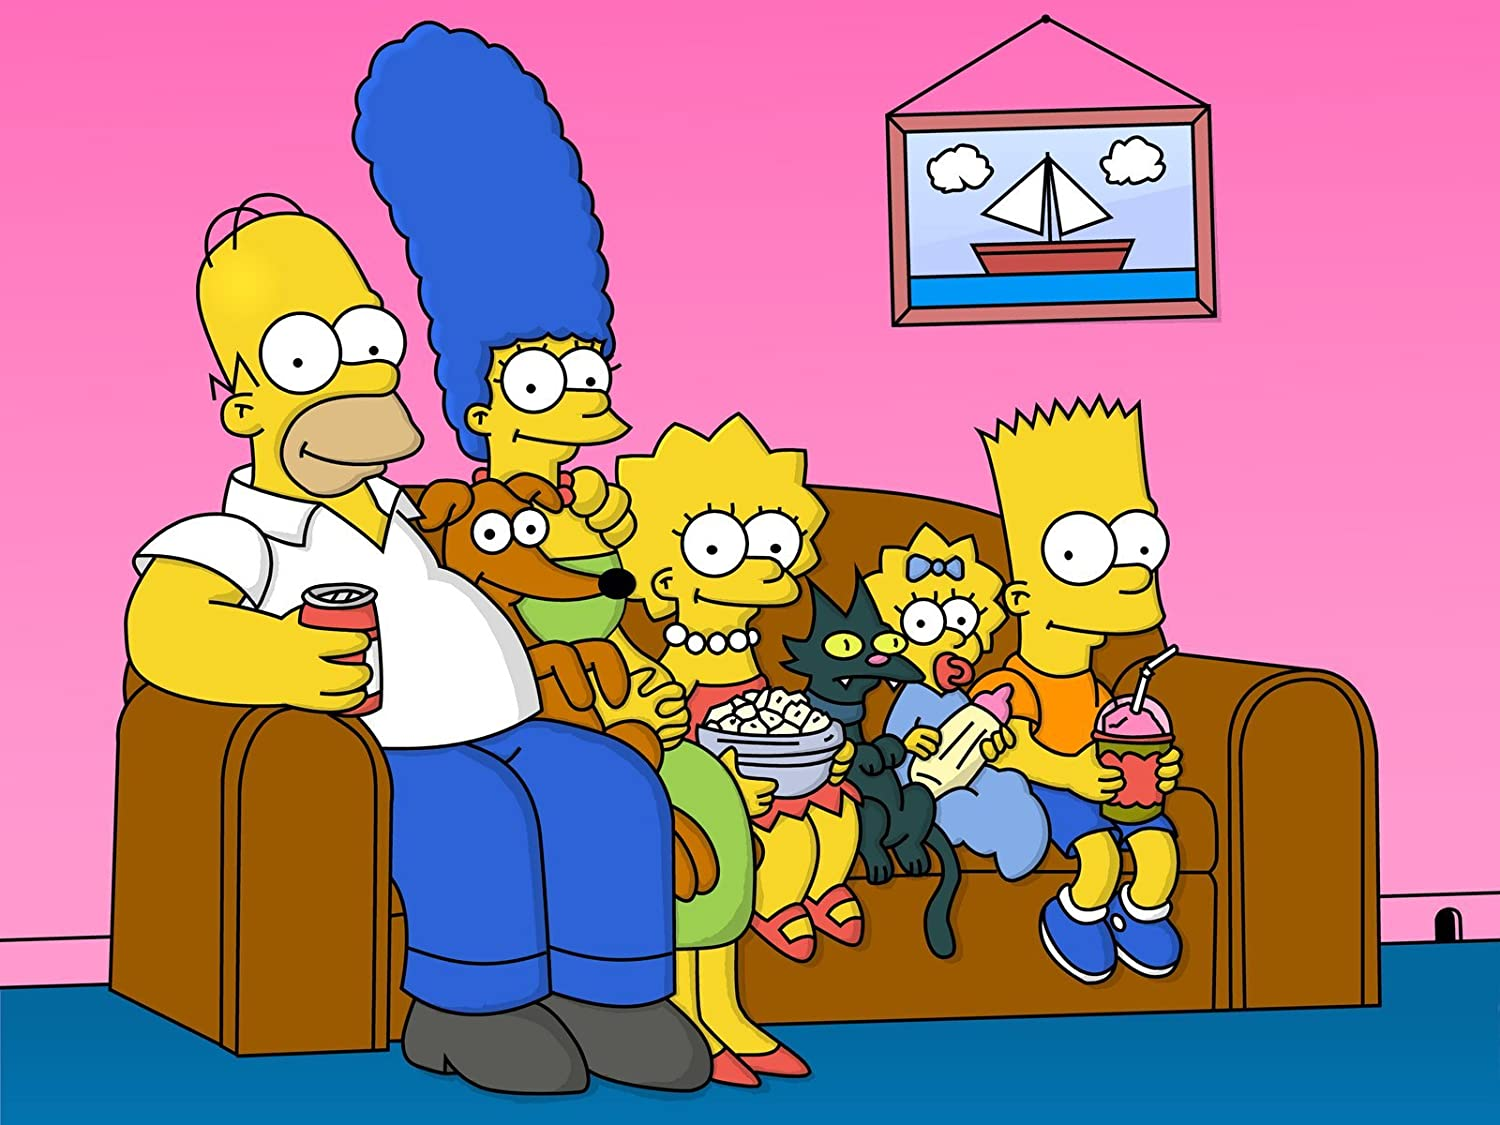 lisa from the simpsons